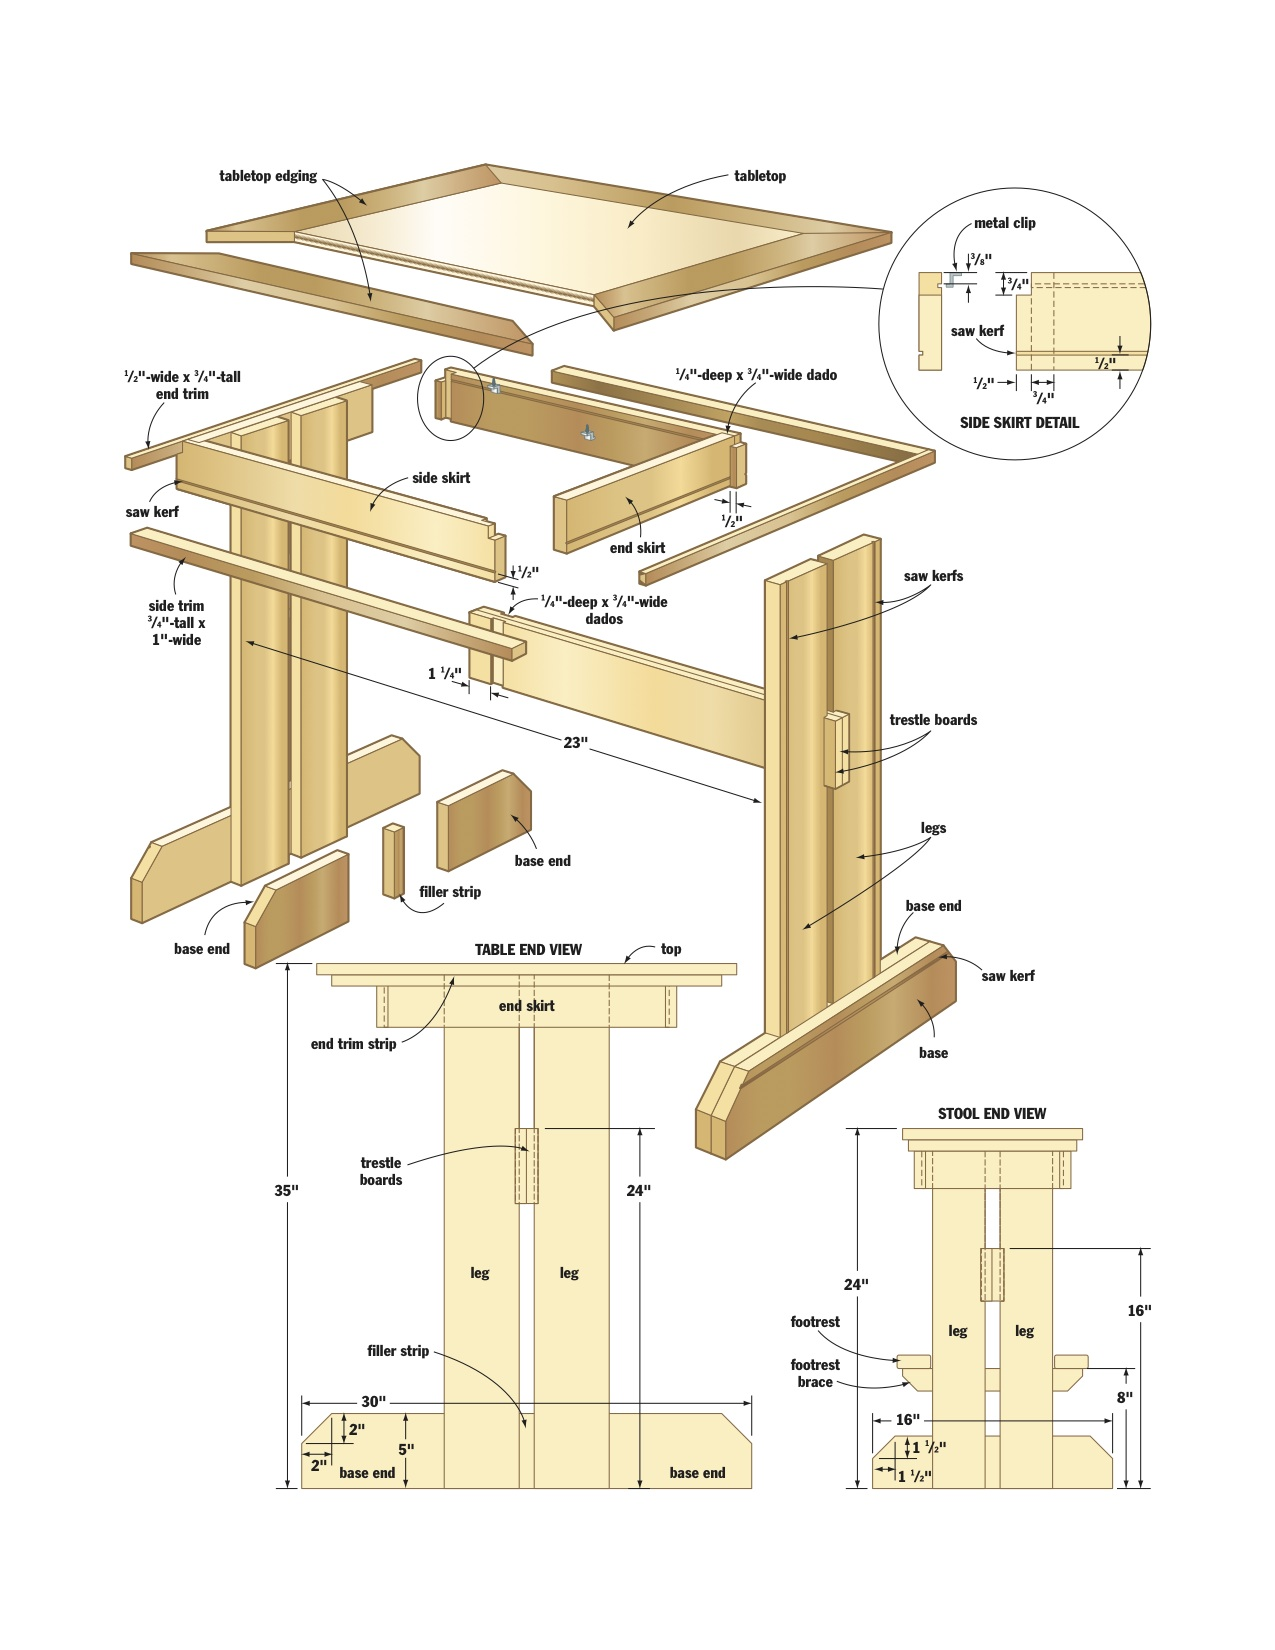 Kitchen nook woodworking plans woodshop plans for Kitchen table designs plans